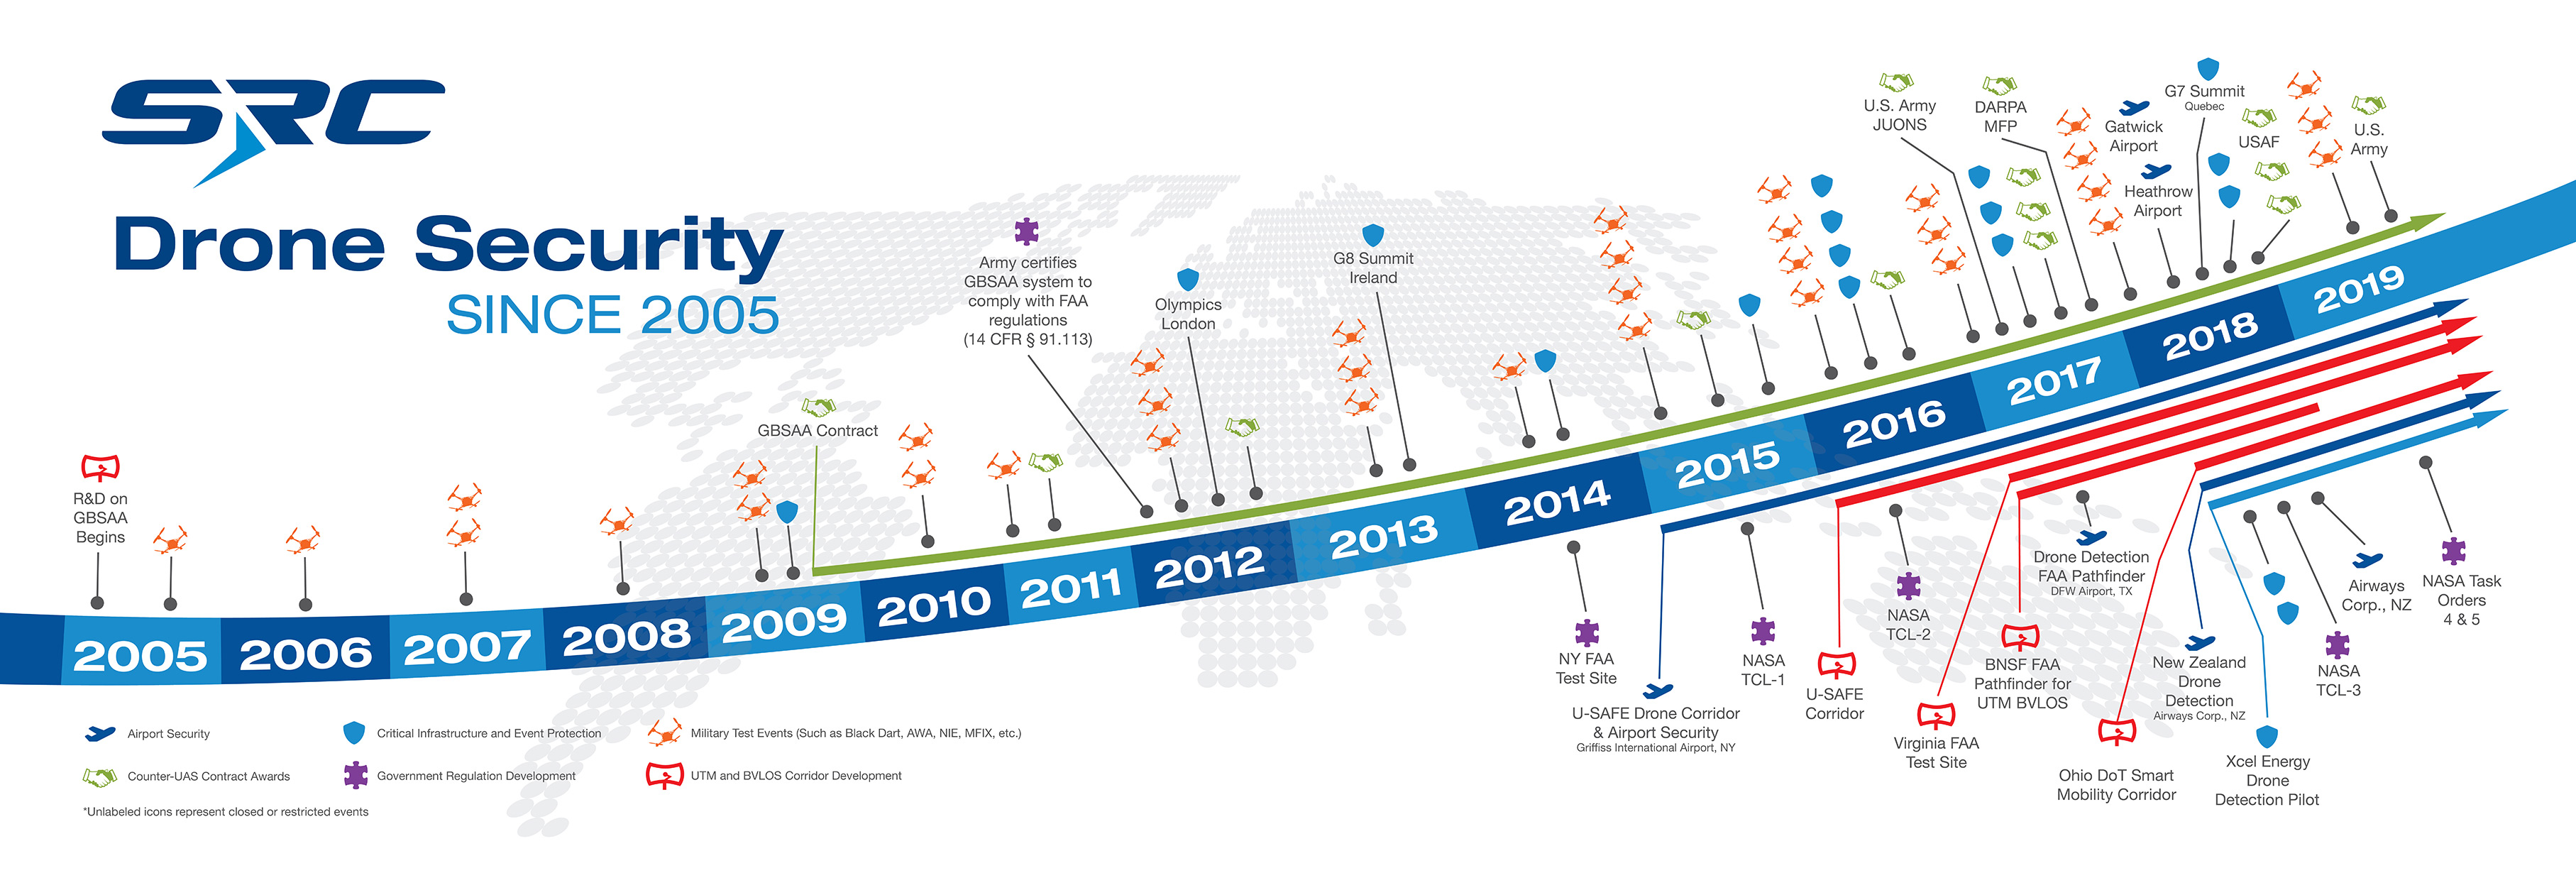 Drone Security since 2005 - Timeline of events and milestones for SRC's counter-UAS technology